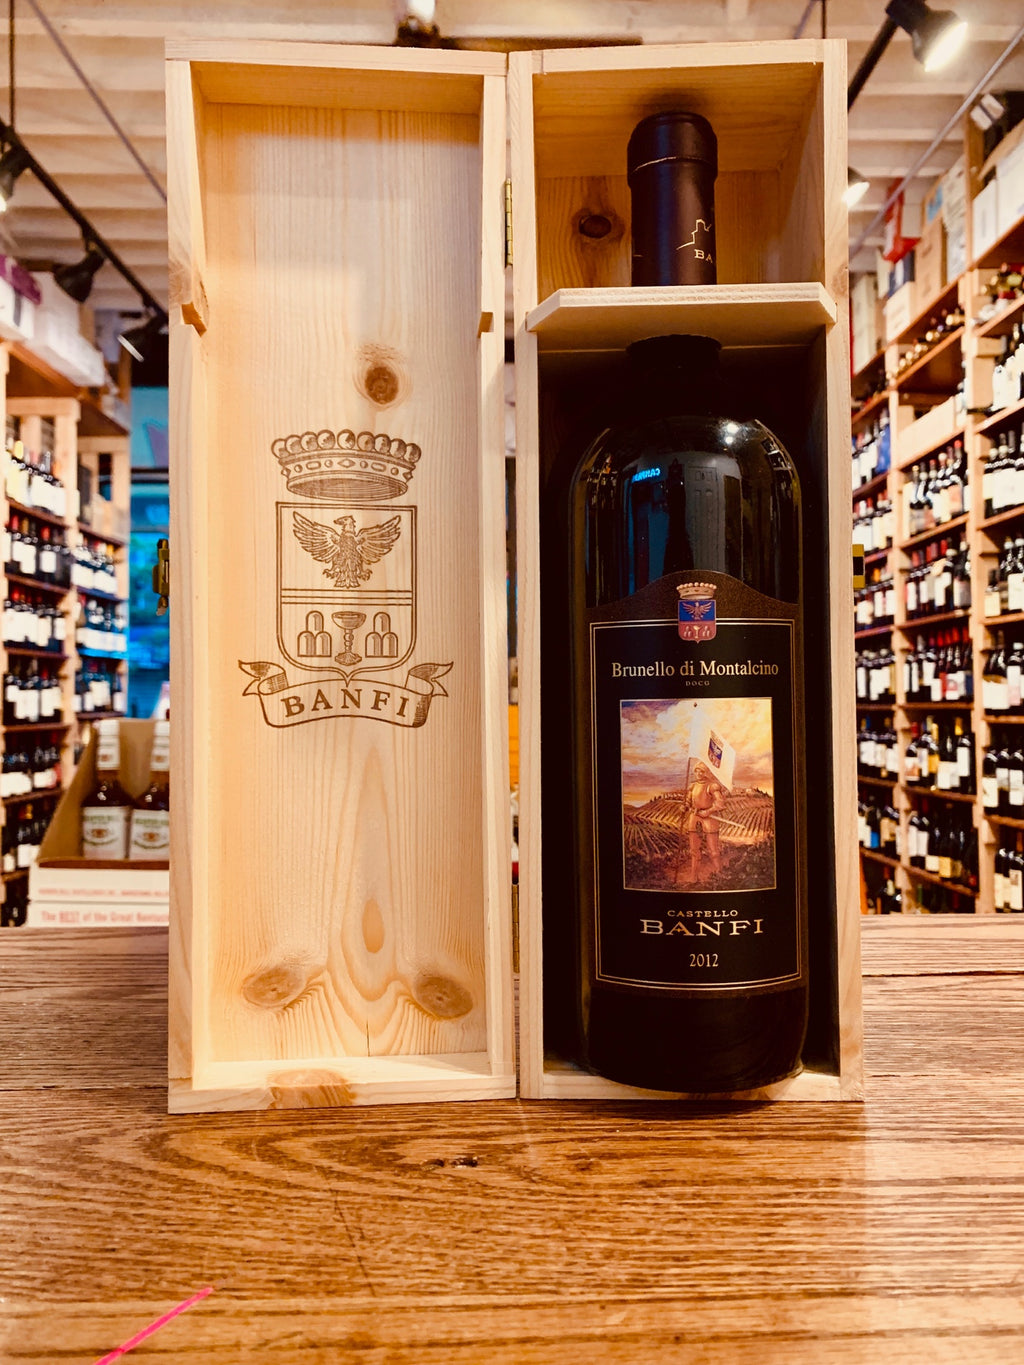 Banfi Brunello 1.5L 2014